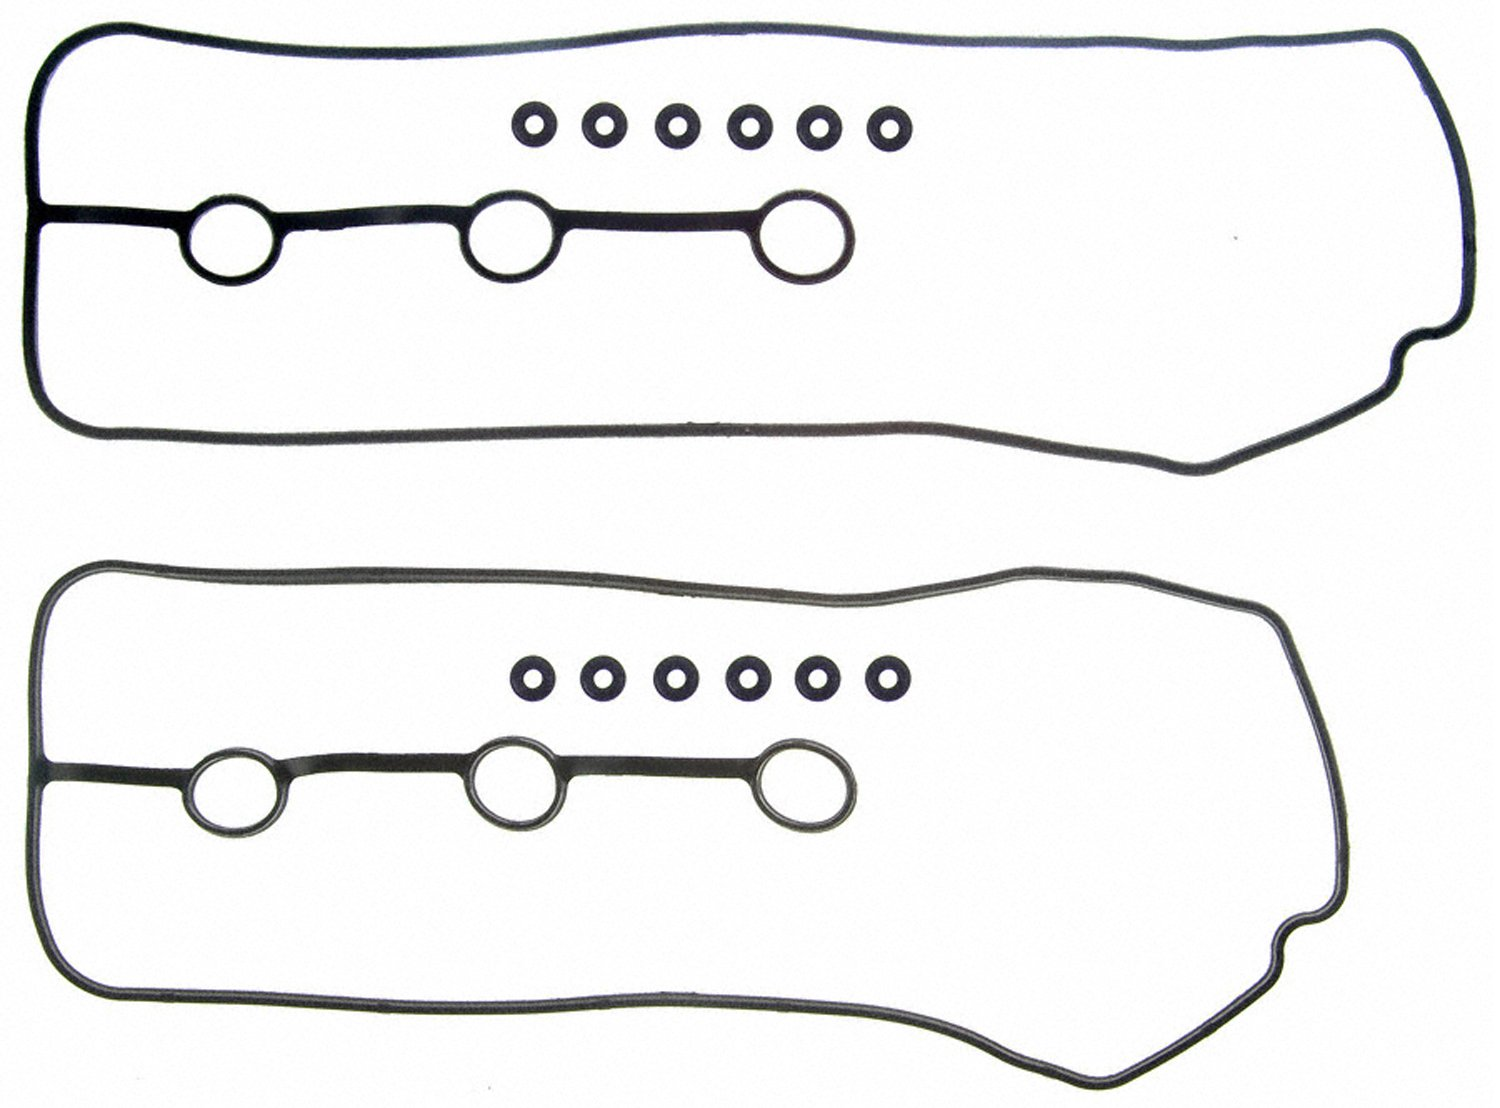 Fel Pro Vs 50634 R Valve Cover Gasket Set Automotive 2007 Yukon Fuse Box Diagram